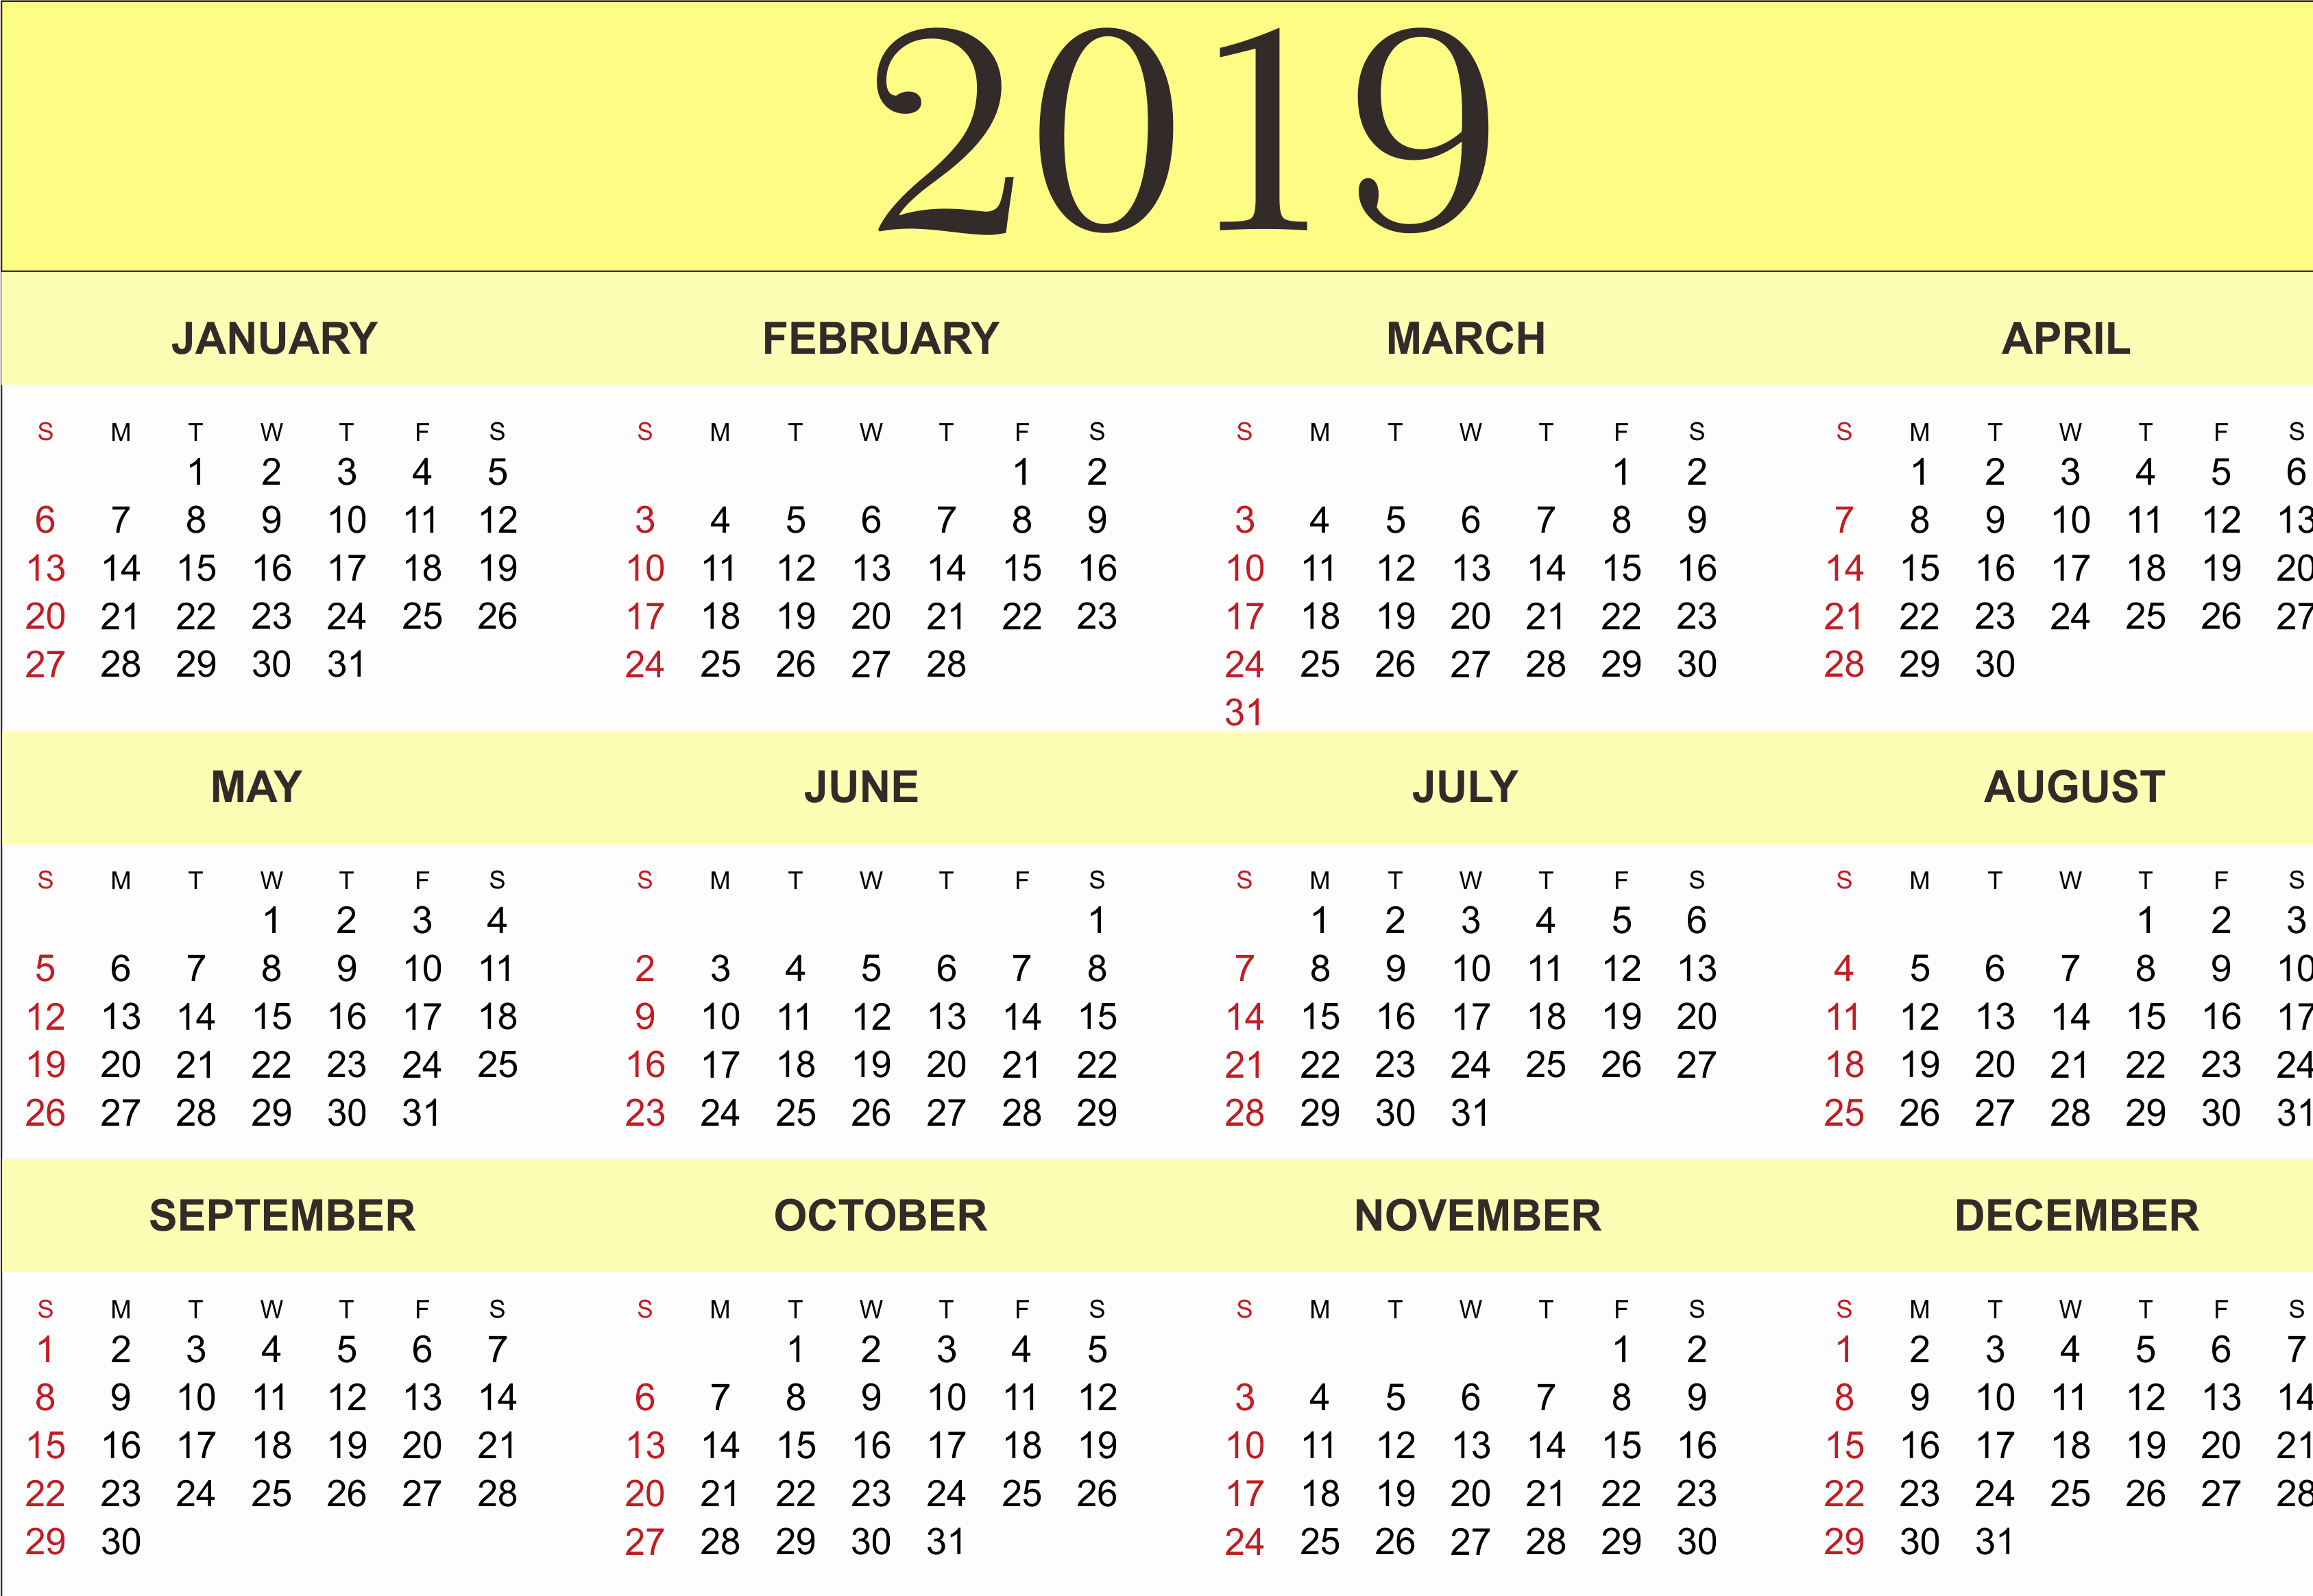 Blank Calendar Template 2019 Unique Free Yearly Calendar 2019 Printable Blank Templates